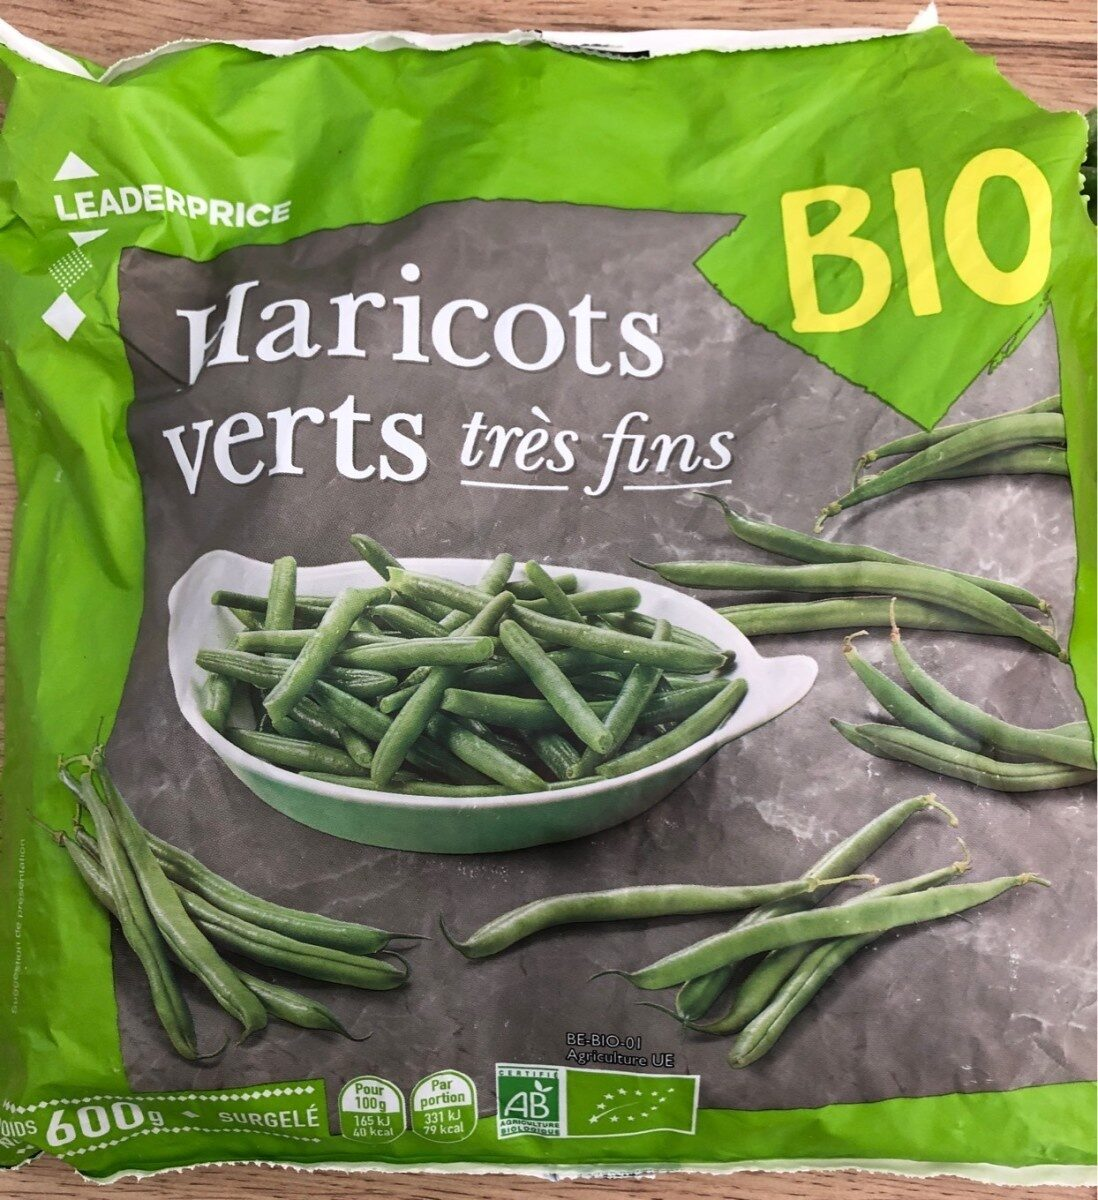 Haricots verts très fins - Product - fr